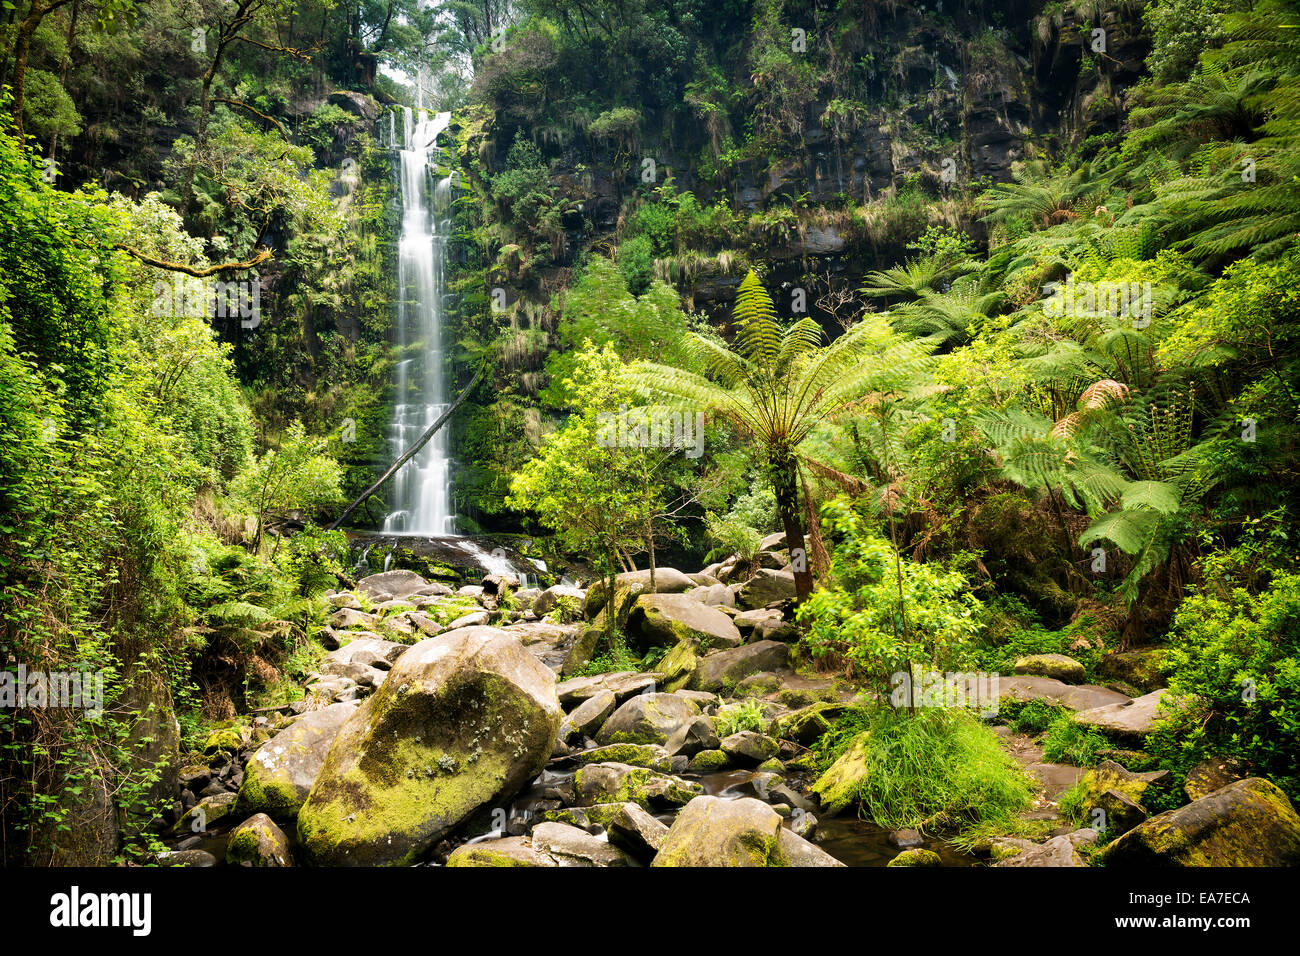 Erskine Falls waterfall in the Otways National Park along the Great Ocean Road, Australia - Stock Image